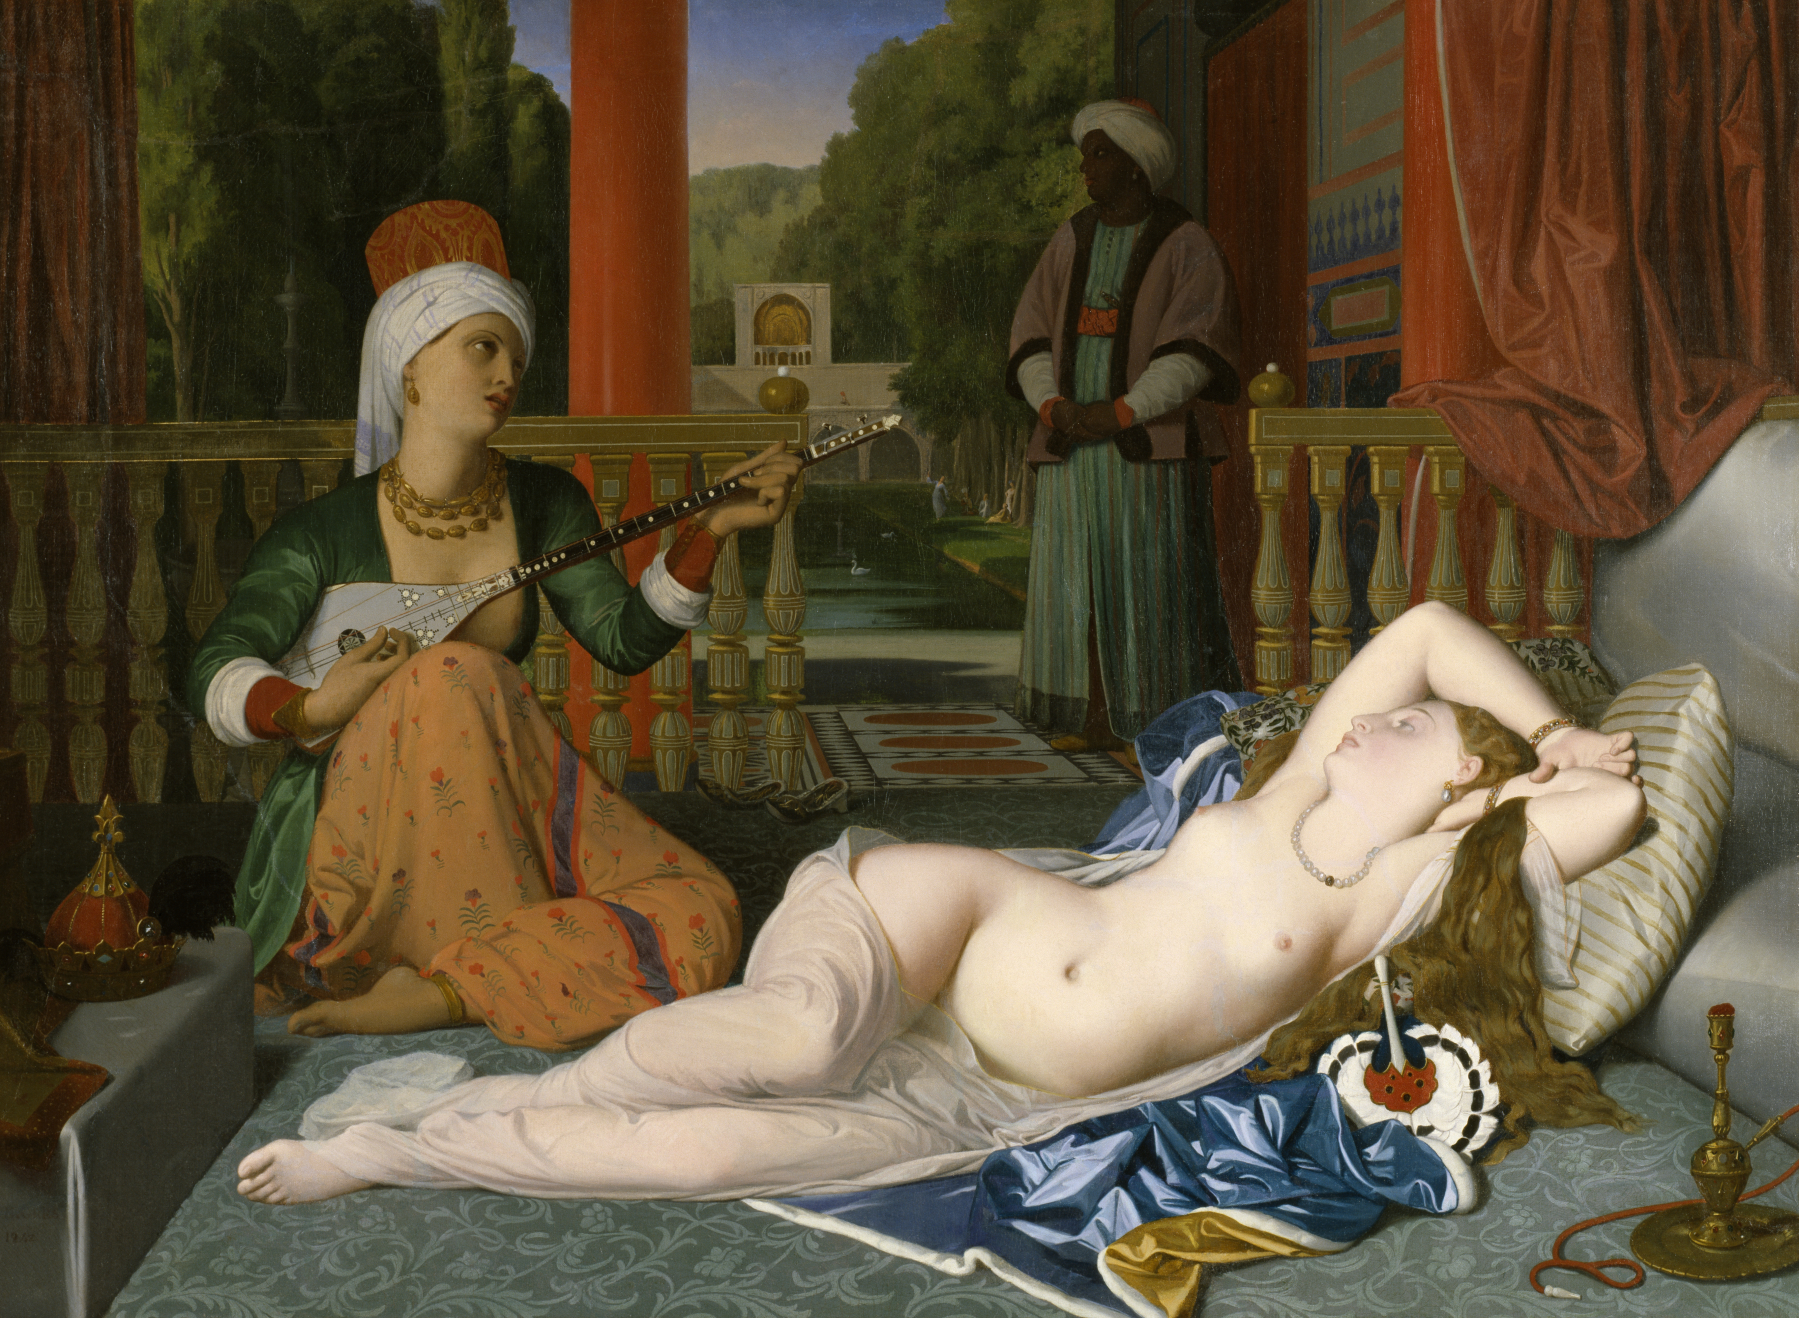 Ingres-painting-Odalisque-with-Slave-Powerful-Goddess-Portraits